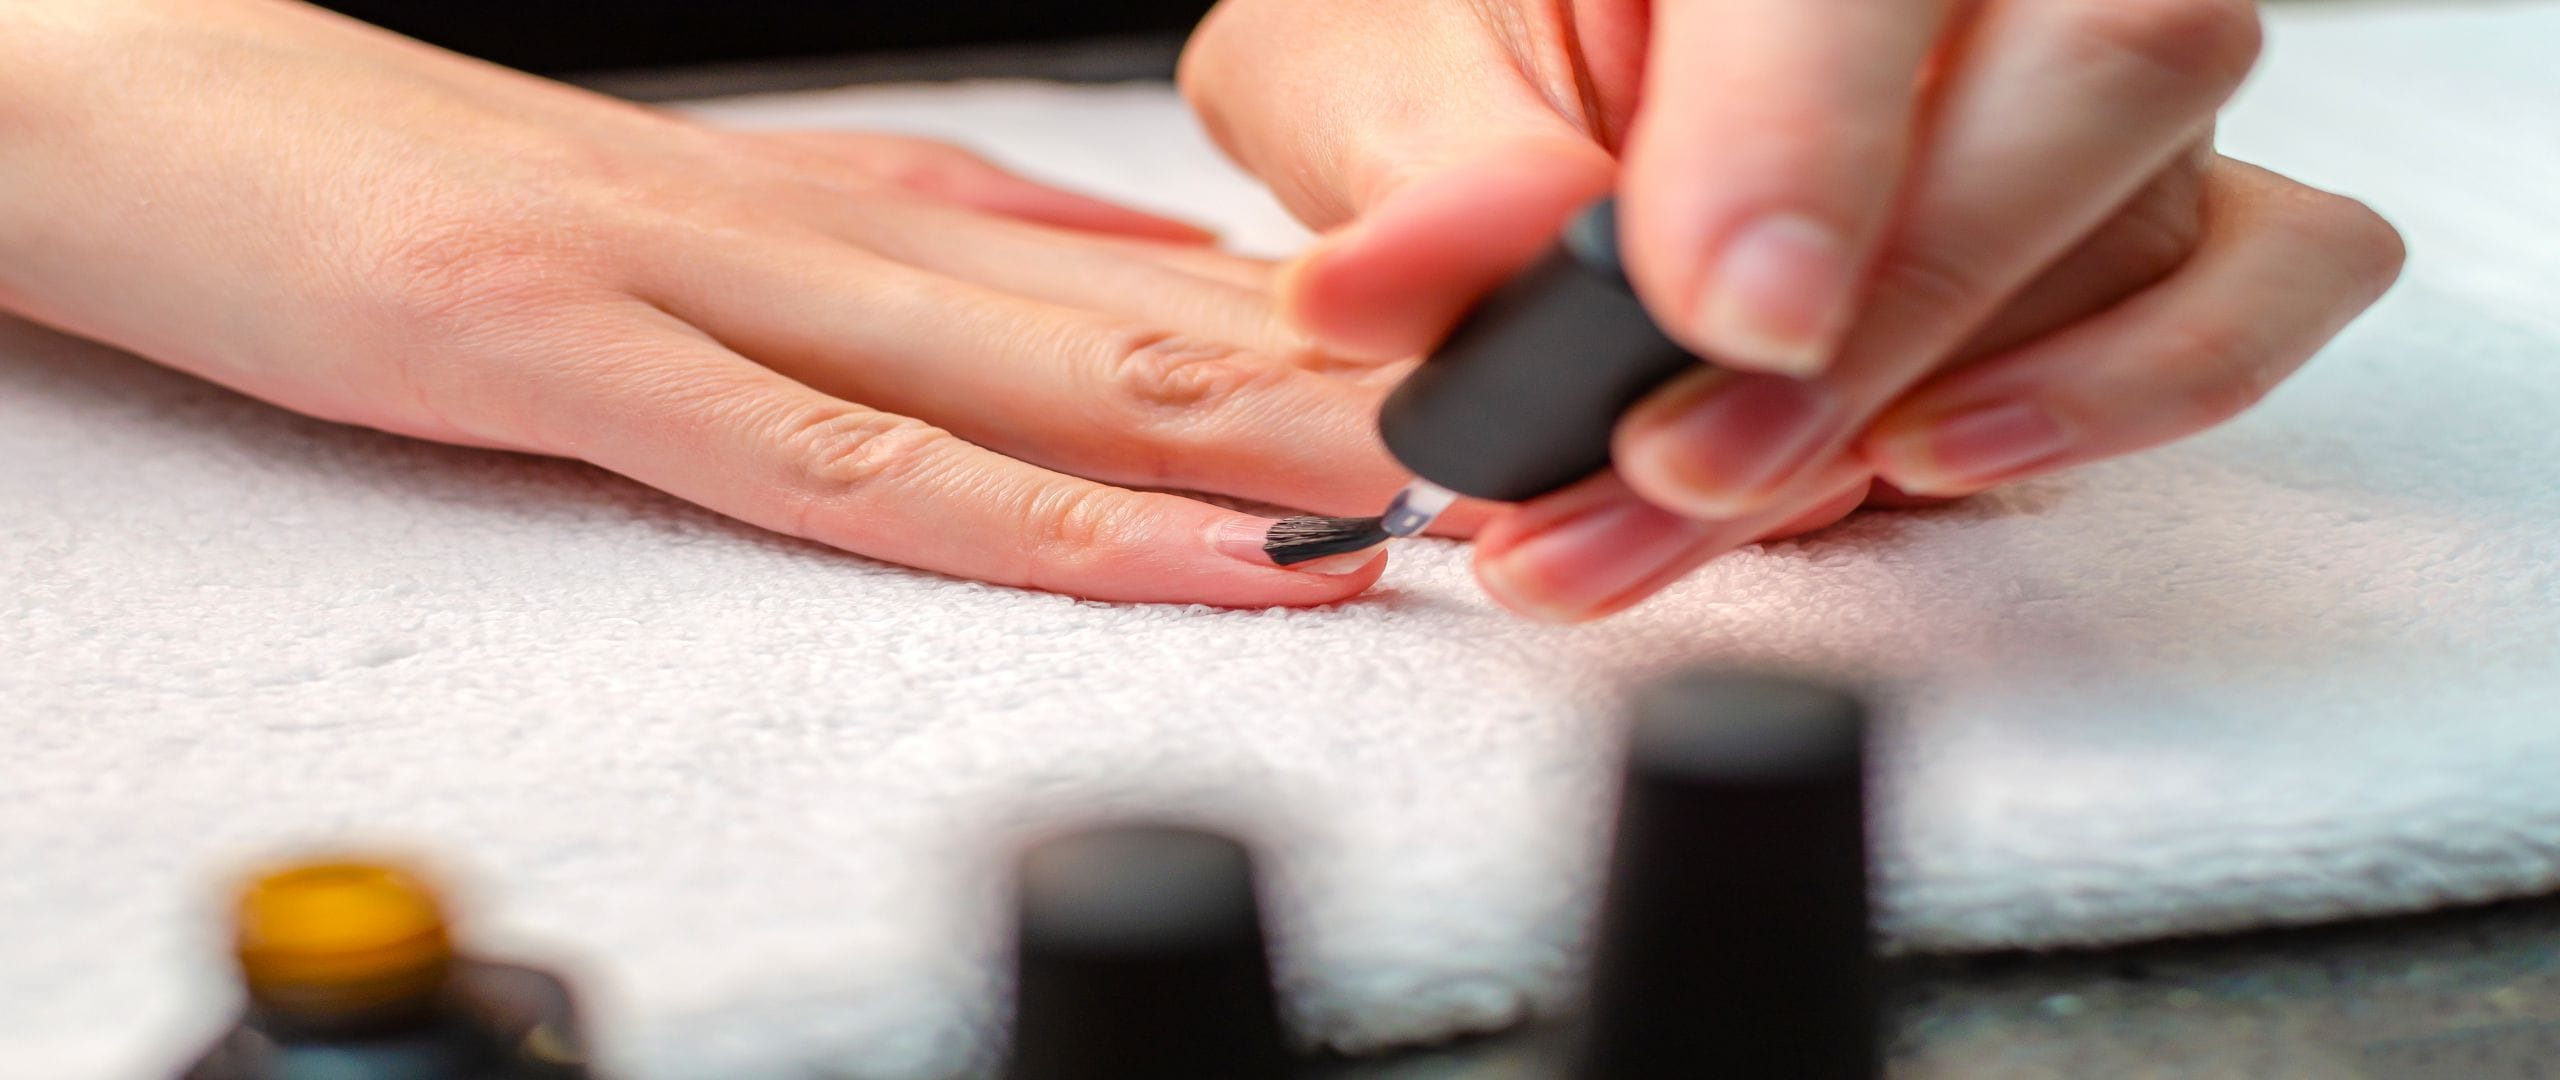 A woman applies a primer to her nails before applying varnish